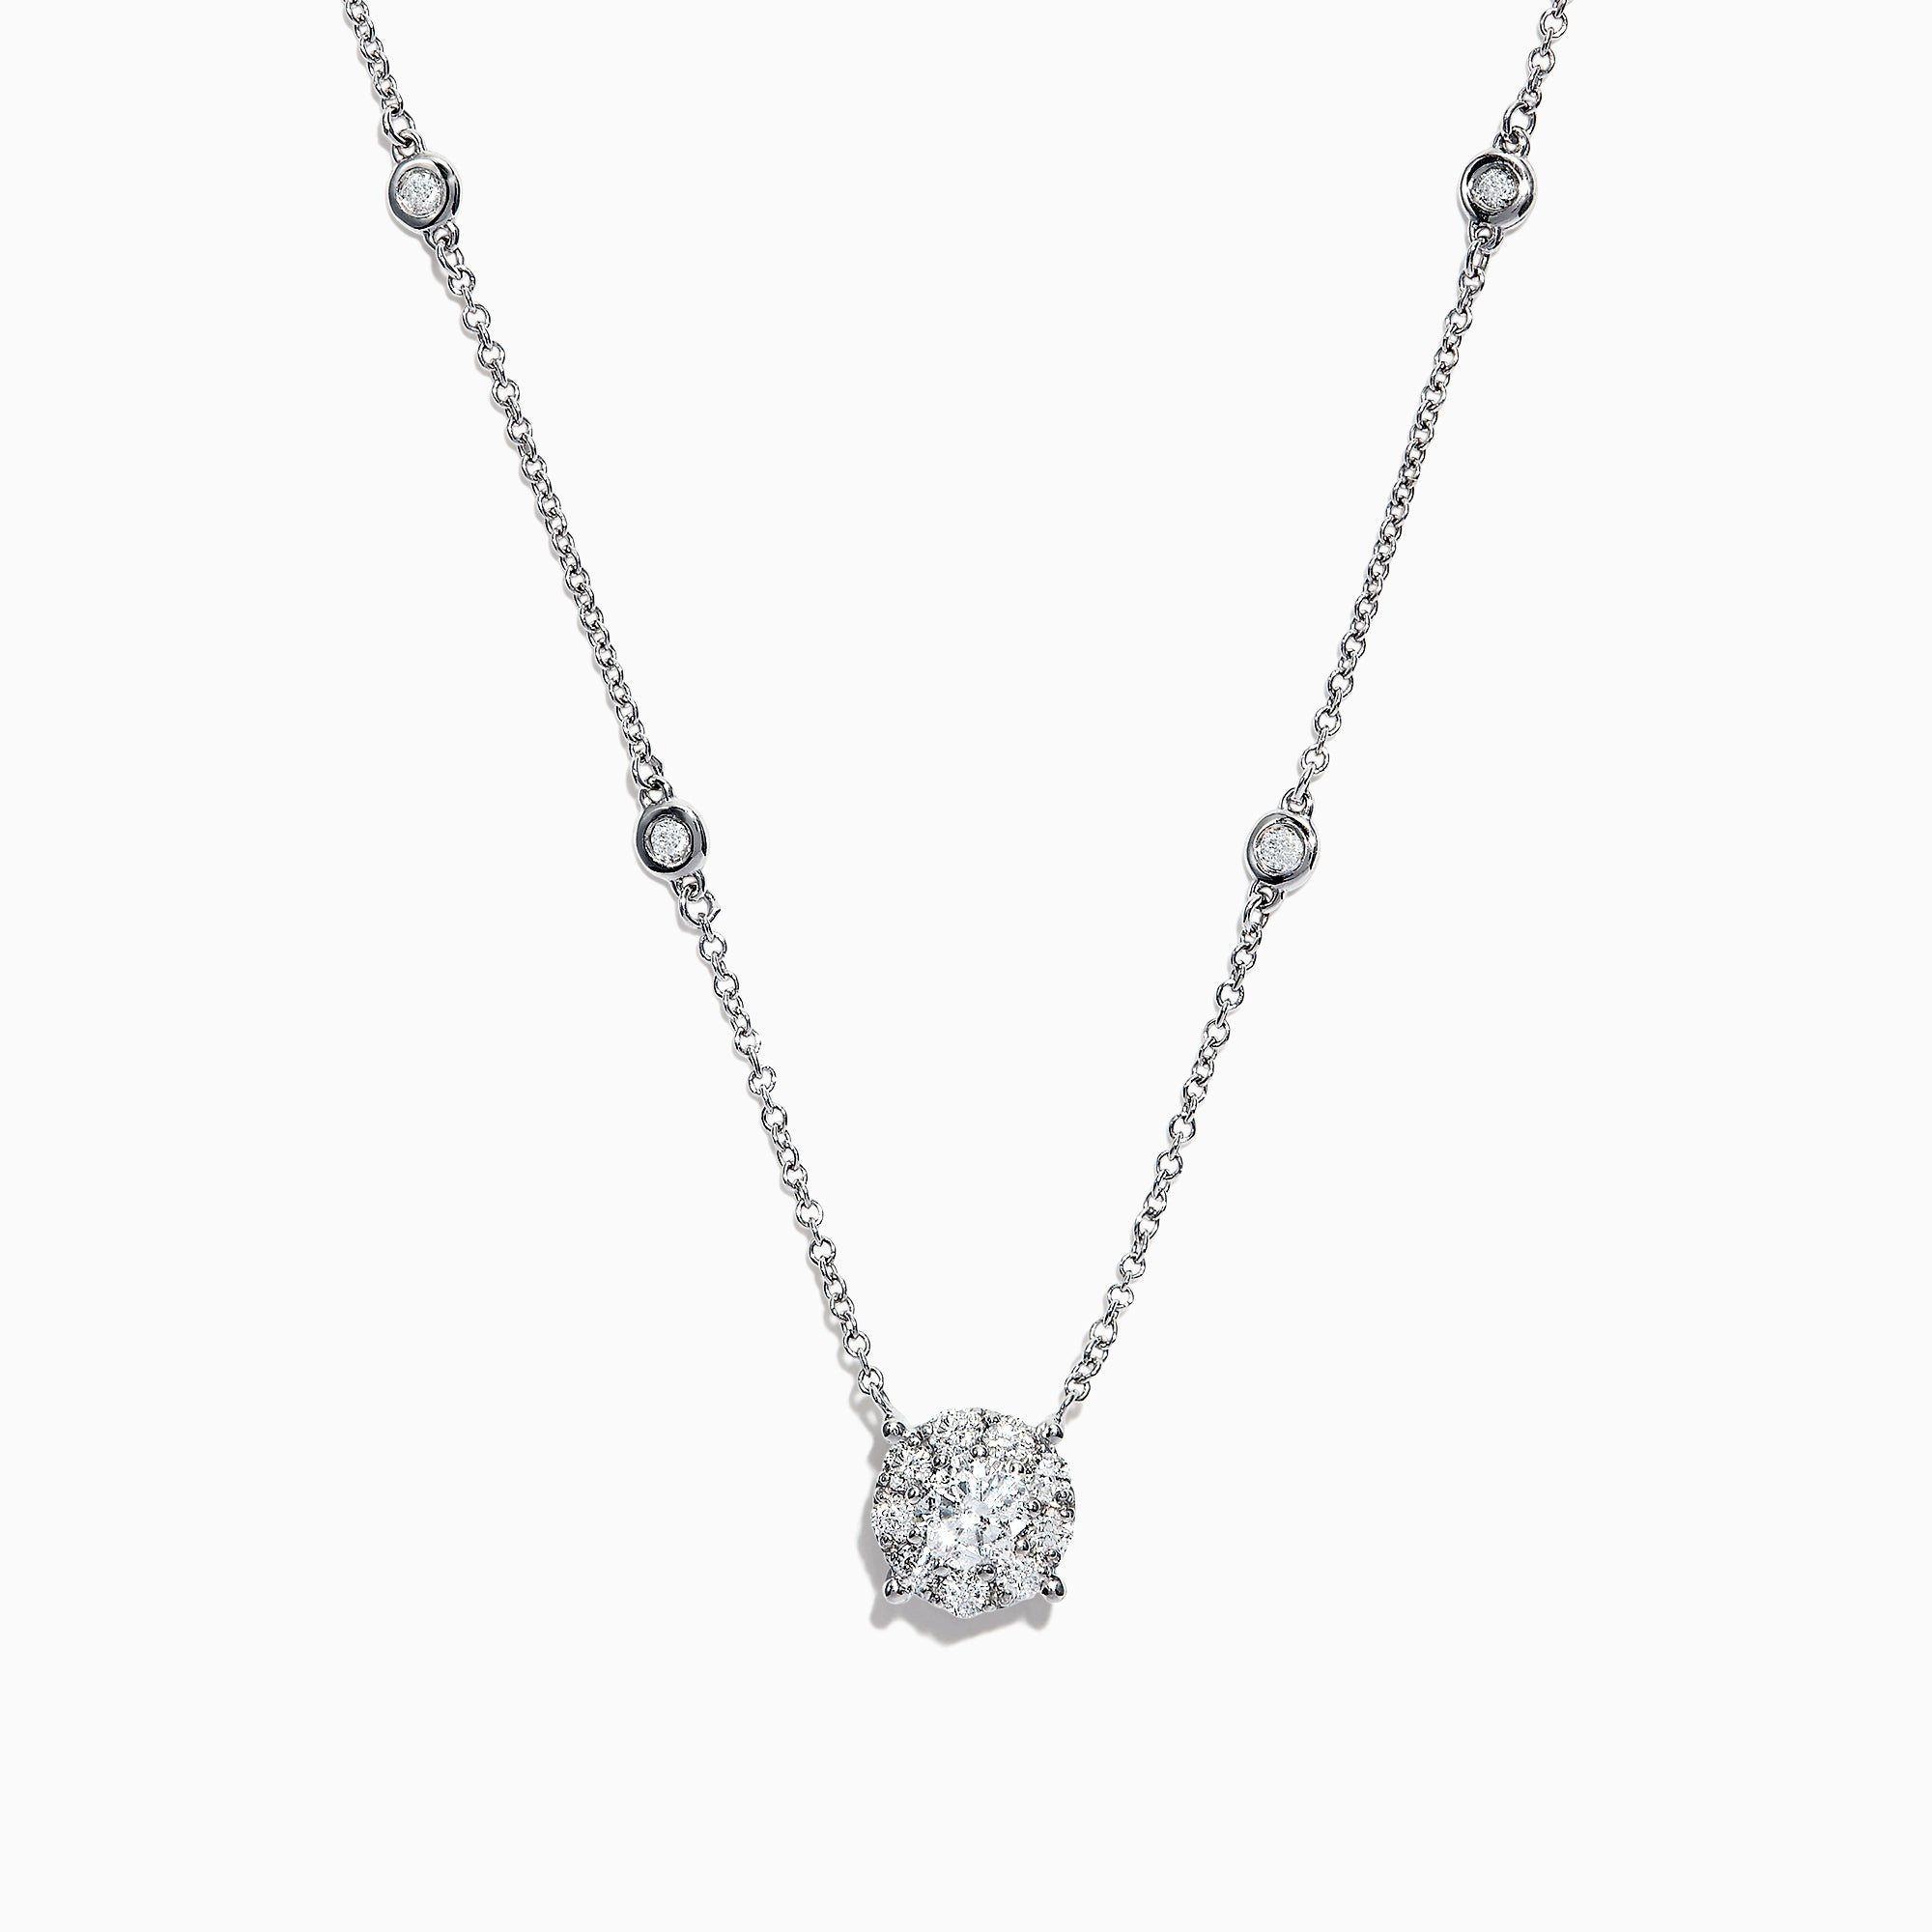 Effy Pave Classica 14K White Gold Diamond Necklace, 0.82 TCW